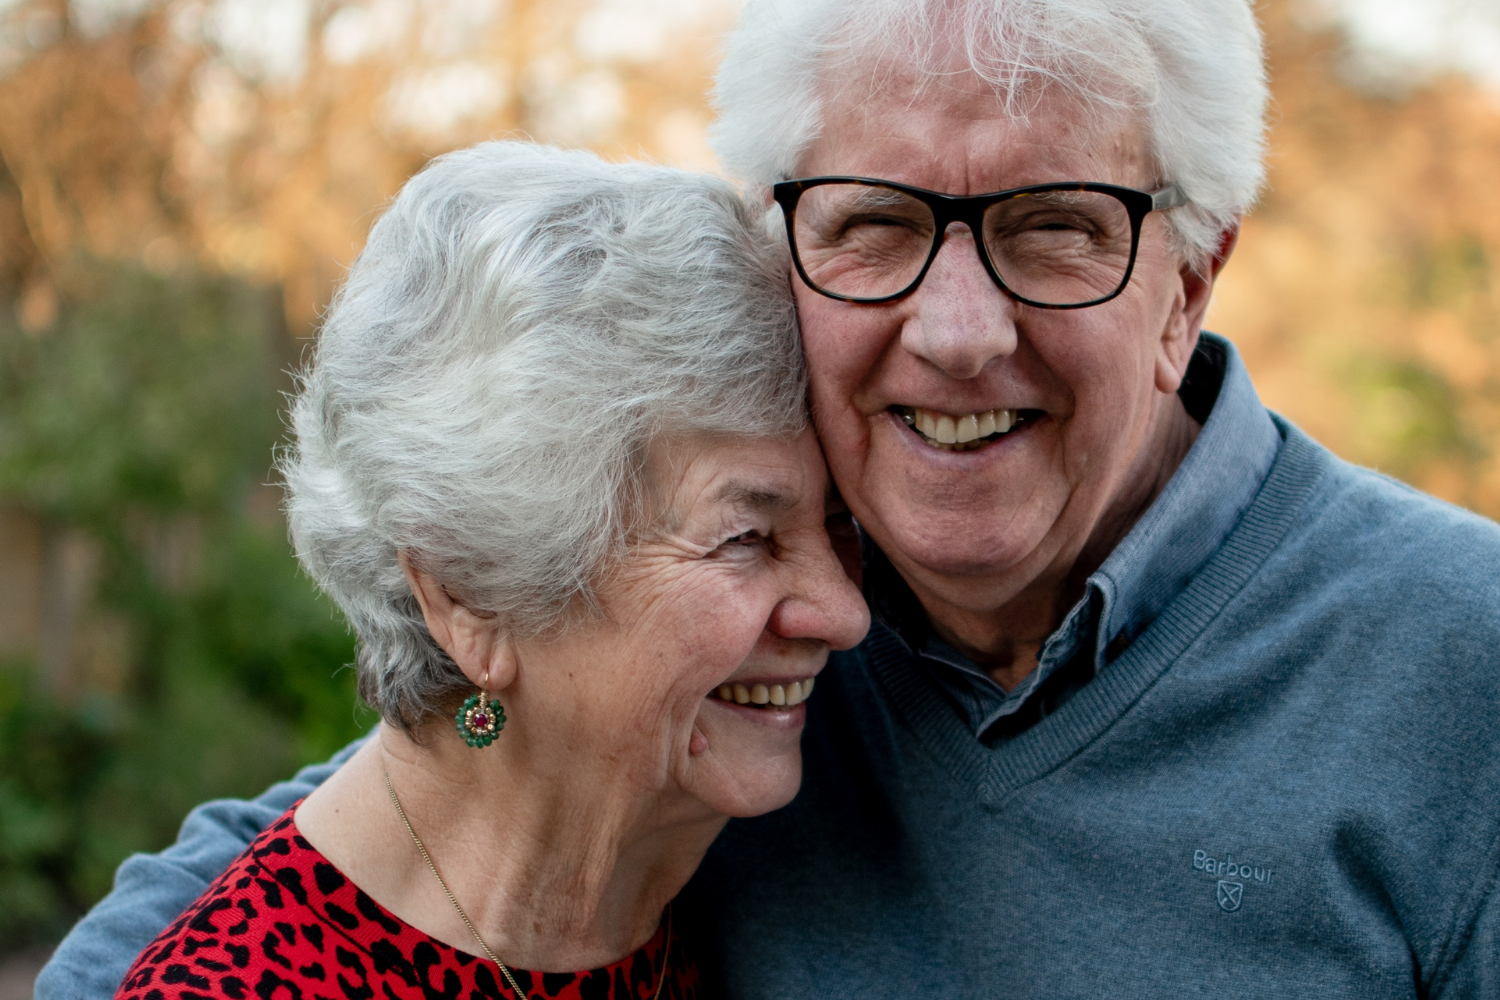 A happy elderly couple embracing